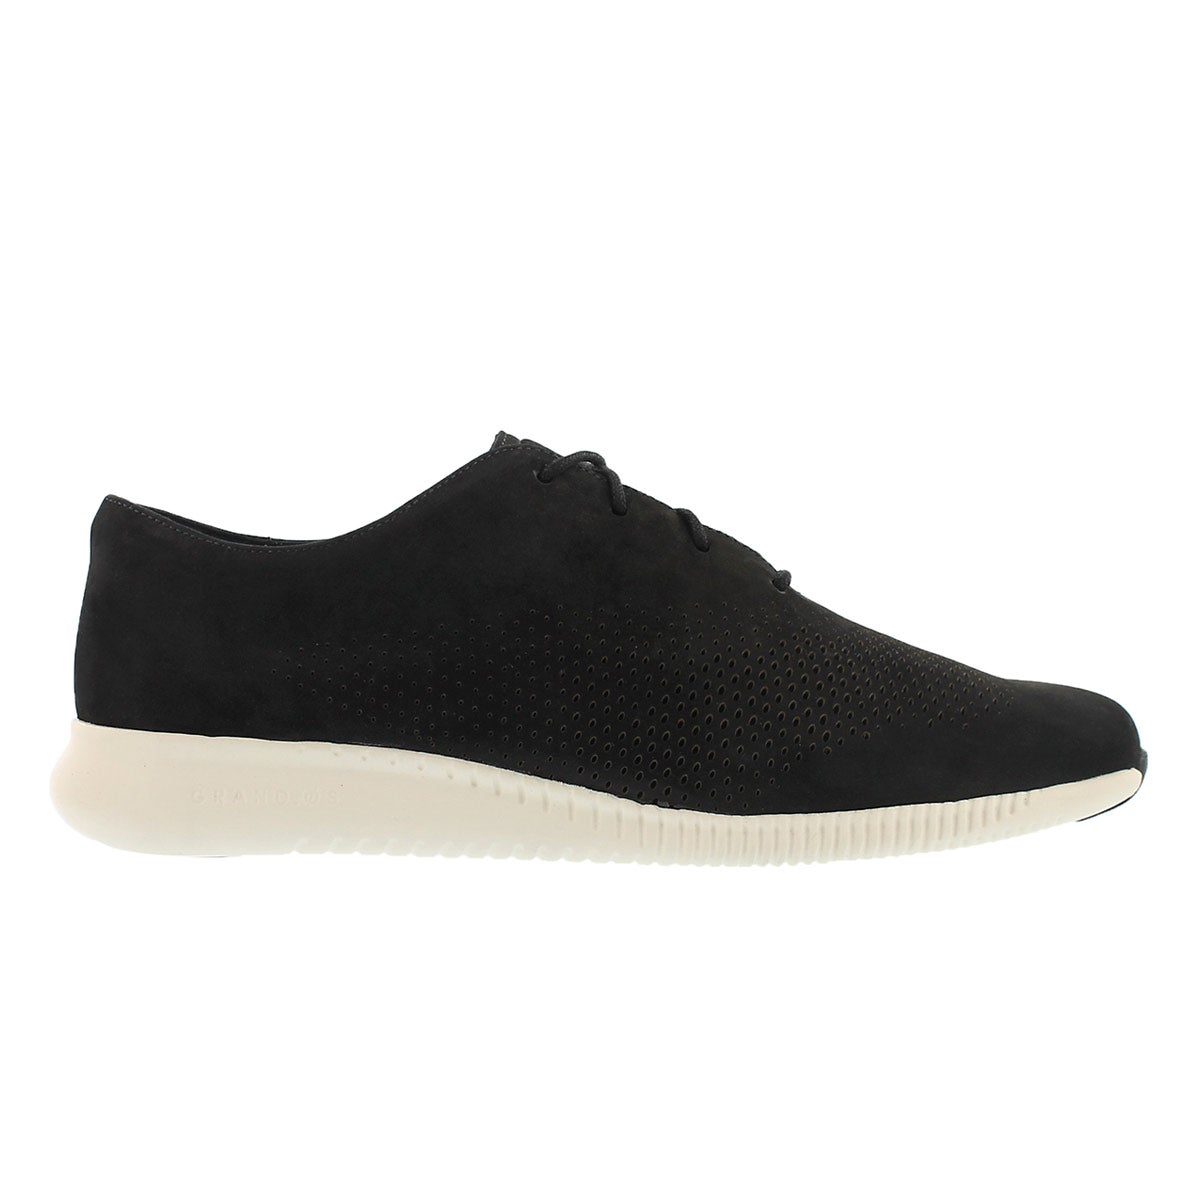 Lds Grand Laser Wing blk casual oxford